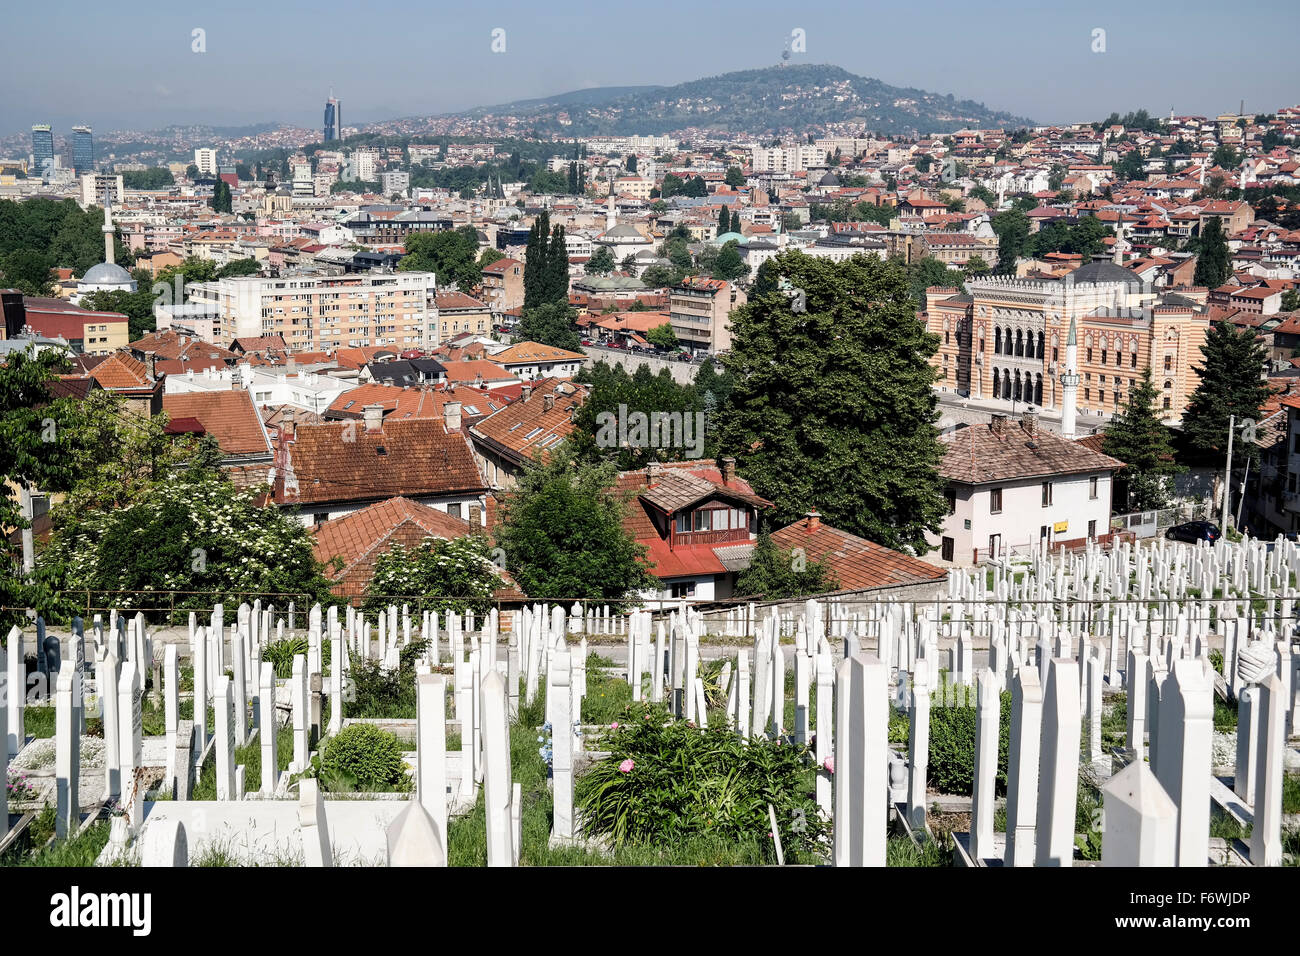 National Library of Bosnia and Herzegovina seen from Alifakovac. Stock Photo